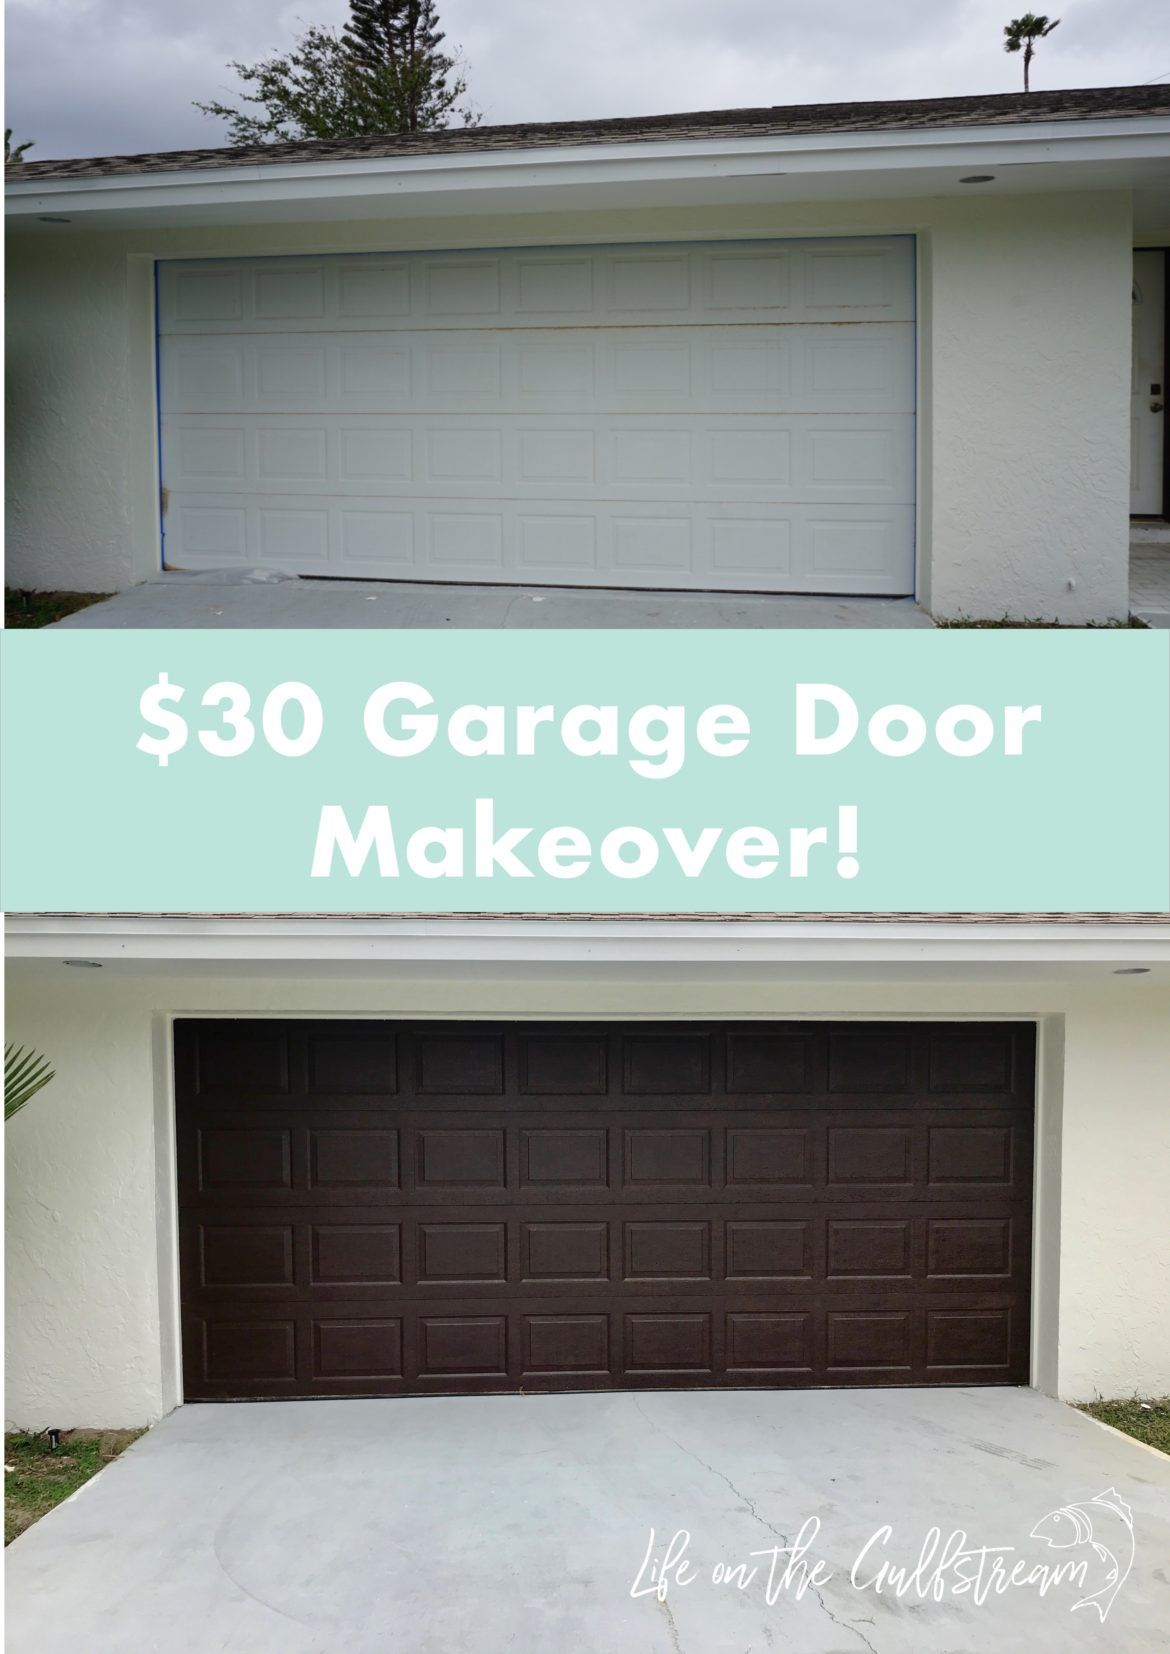 Gel Stain Wood Garage Door Makeover Life on the